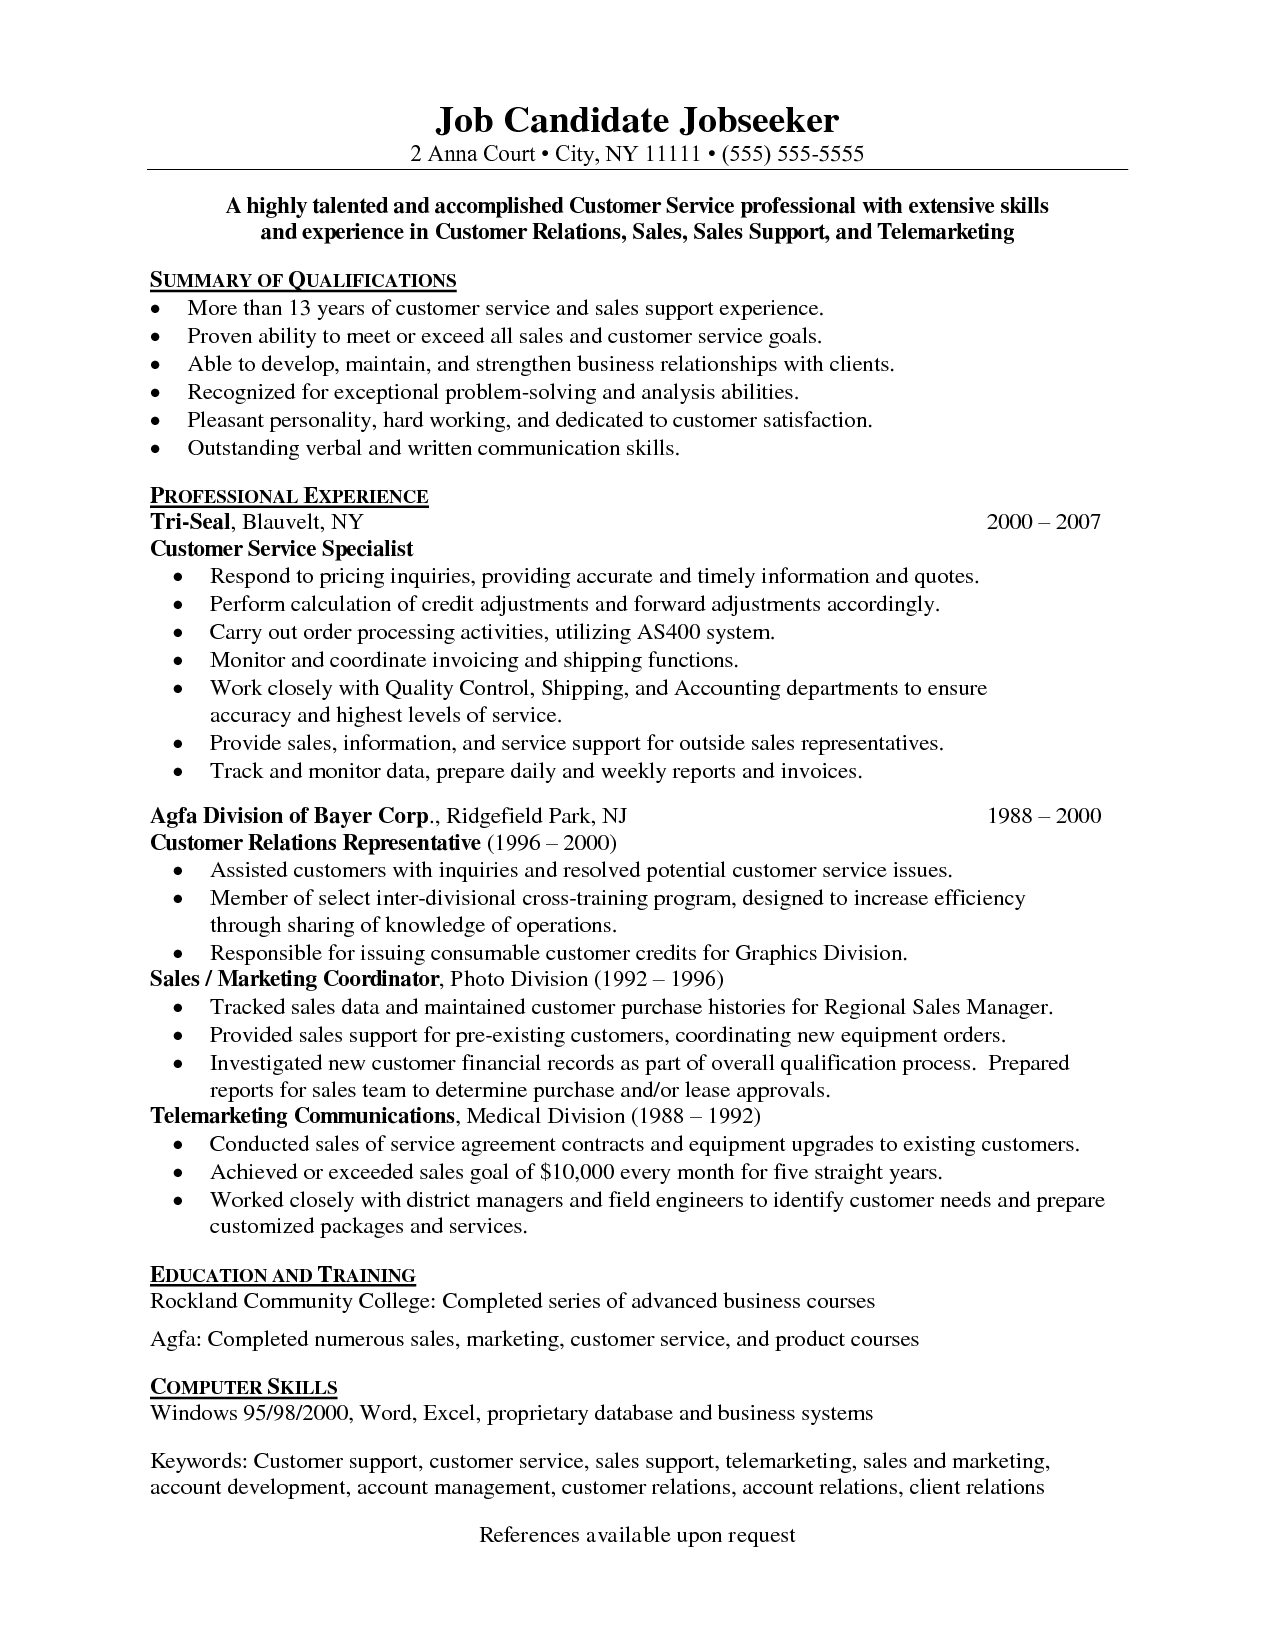 Picnictoimpeachus  Mesmerizing Customer Service Resume Format  Roiinvestingcom With Outstanding Customer Service Resume Format  With Cute Resume Action Words Also Resume Writing Services In Addition Resume Paper And Resume Format As Well As Free Resume Templates Additionally Resume Objective From Roiinvestingcom With Picnictoimpeachus  Outstanding Customer Service Resume Format  Roiinvestingcom With Cute Customer Service Resume Format  And Mesmerizing Resume Action Words Also Resume Writing Services In Addition Resume Paper From Roiinvestingcom